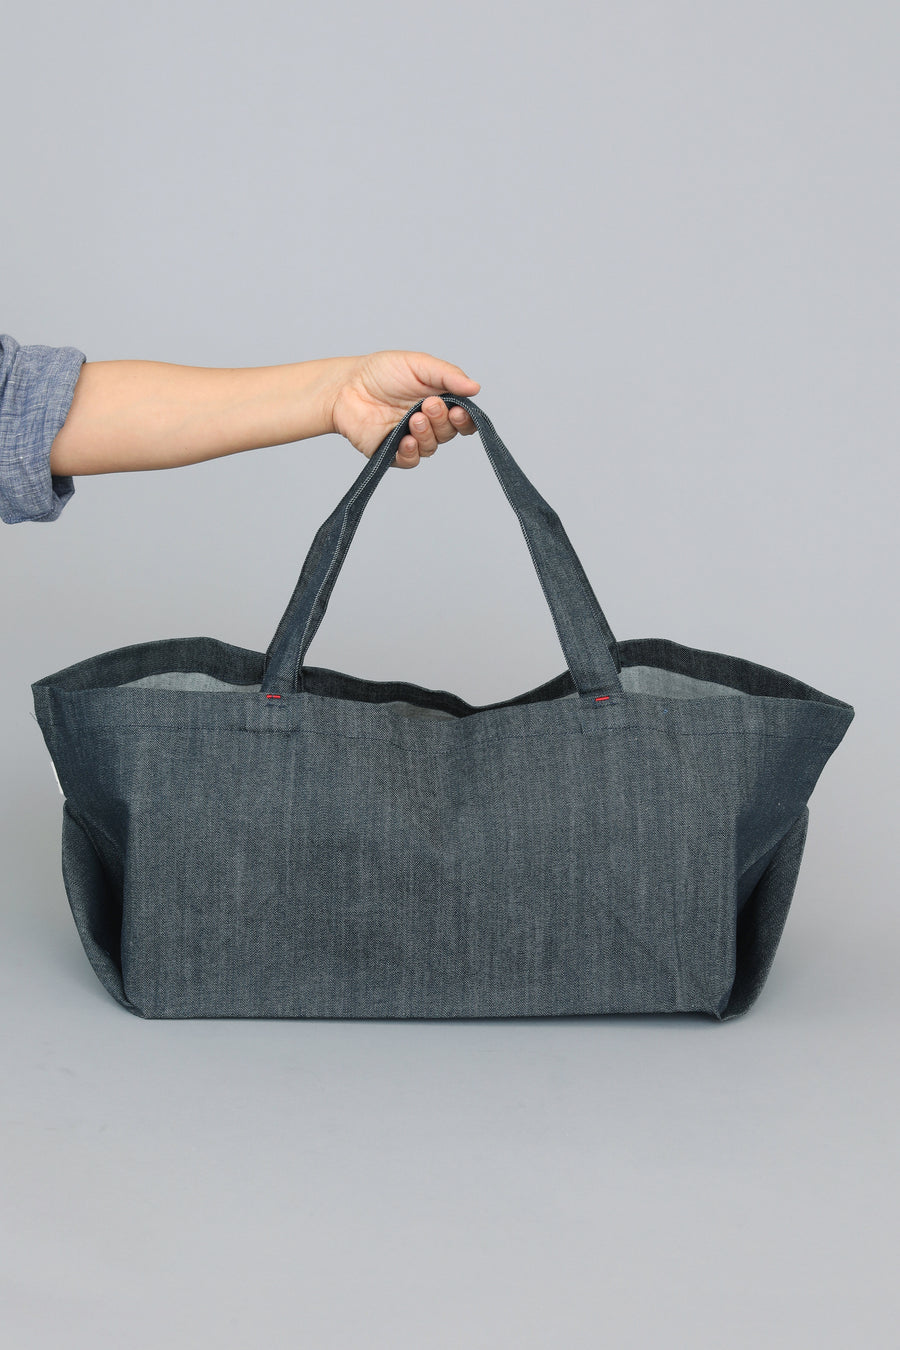 Grand Carryall Tote | Denim - Aplat